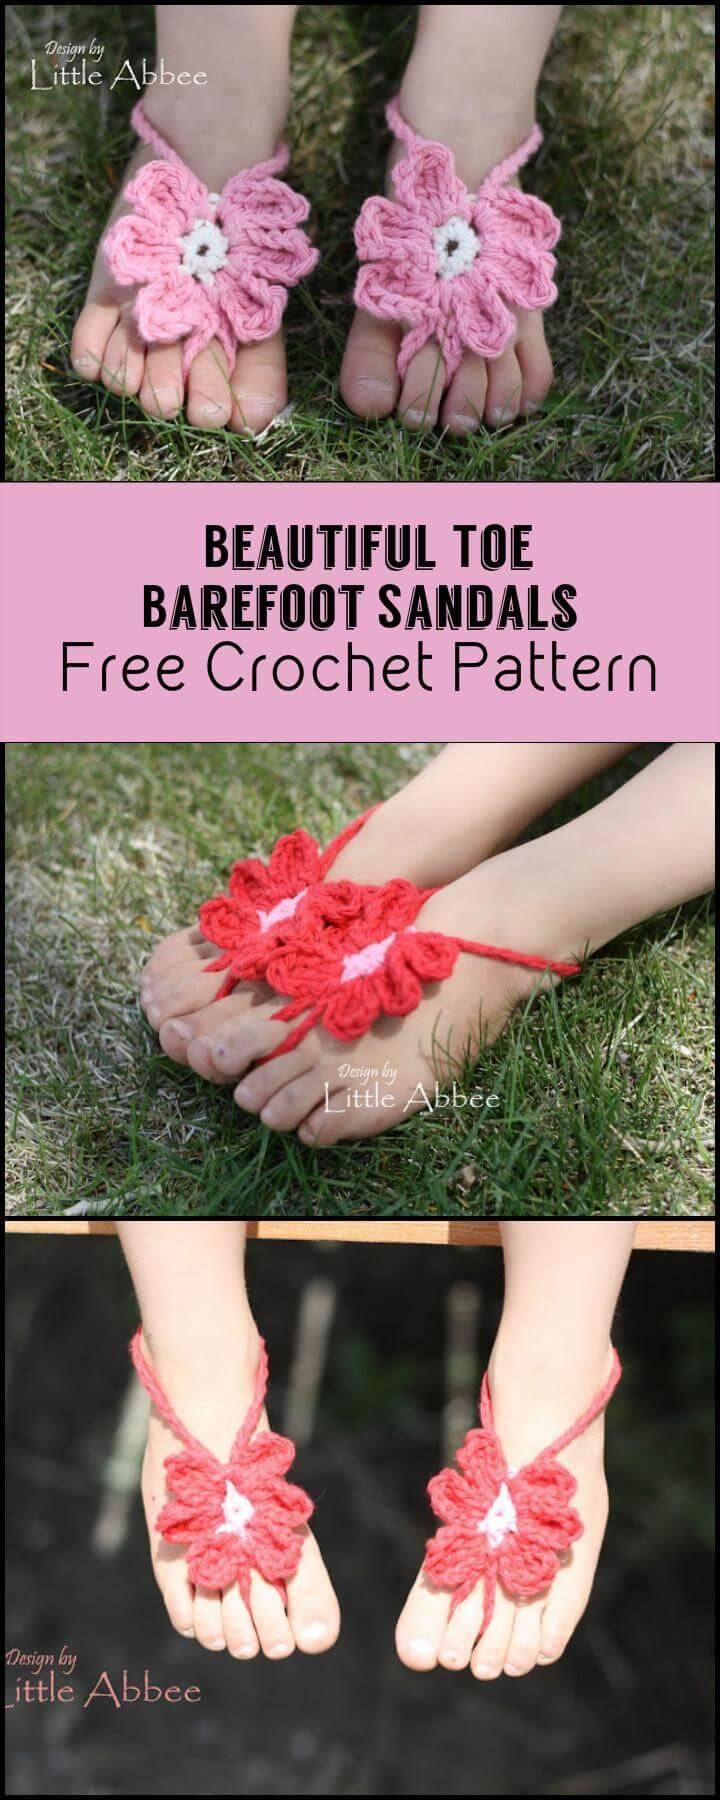 Beautiful Toe Barefoot Sandals Free Crochet Pattern